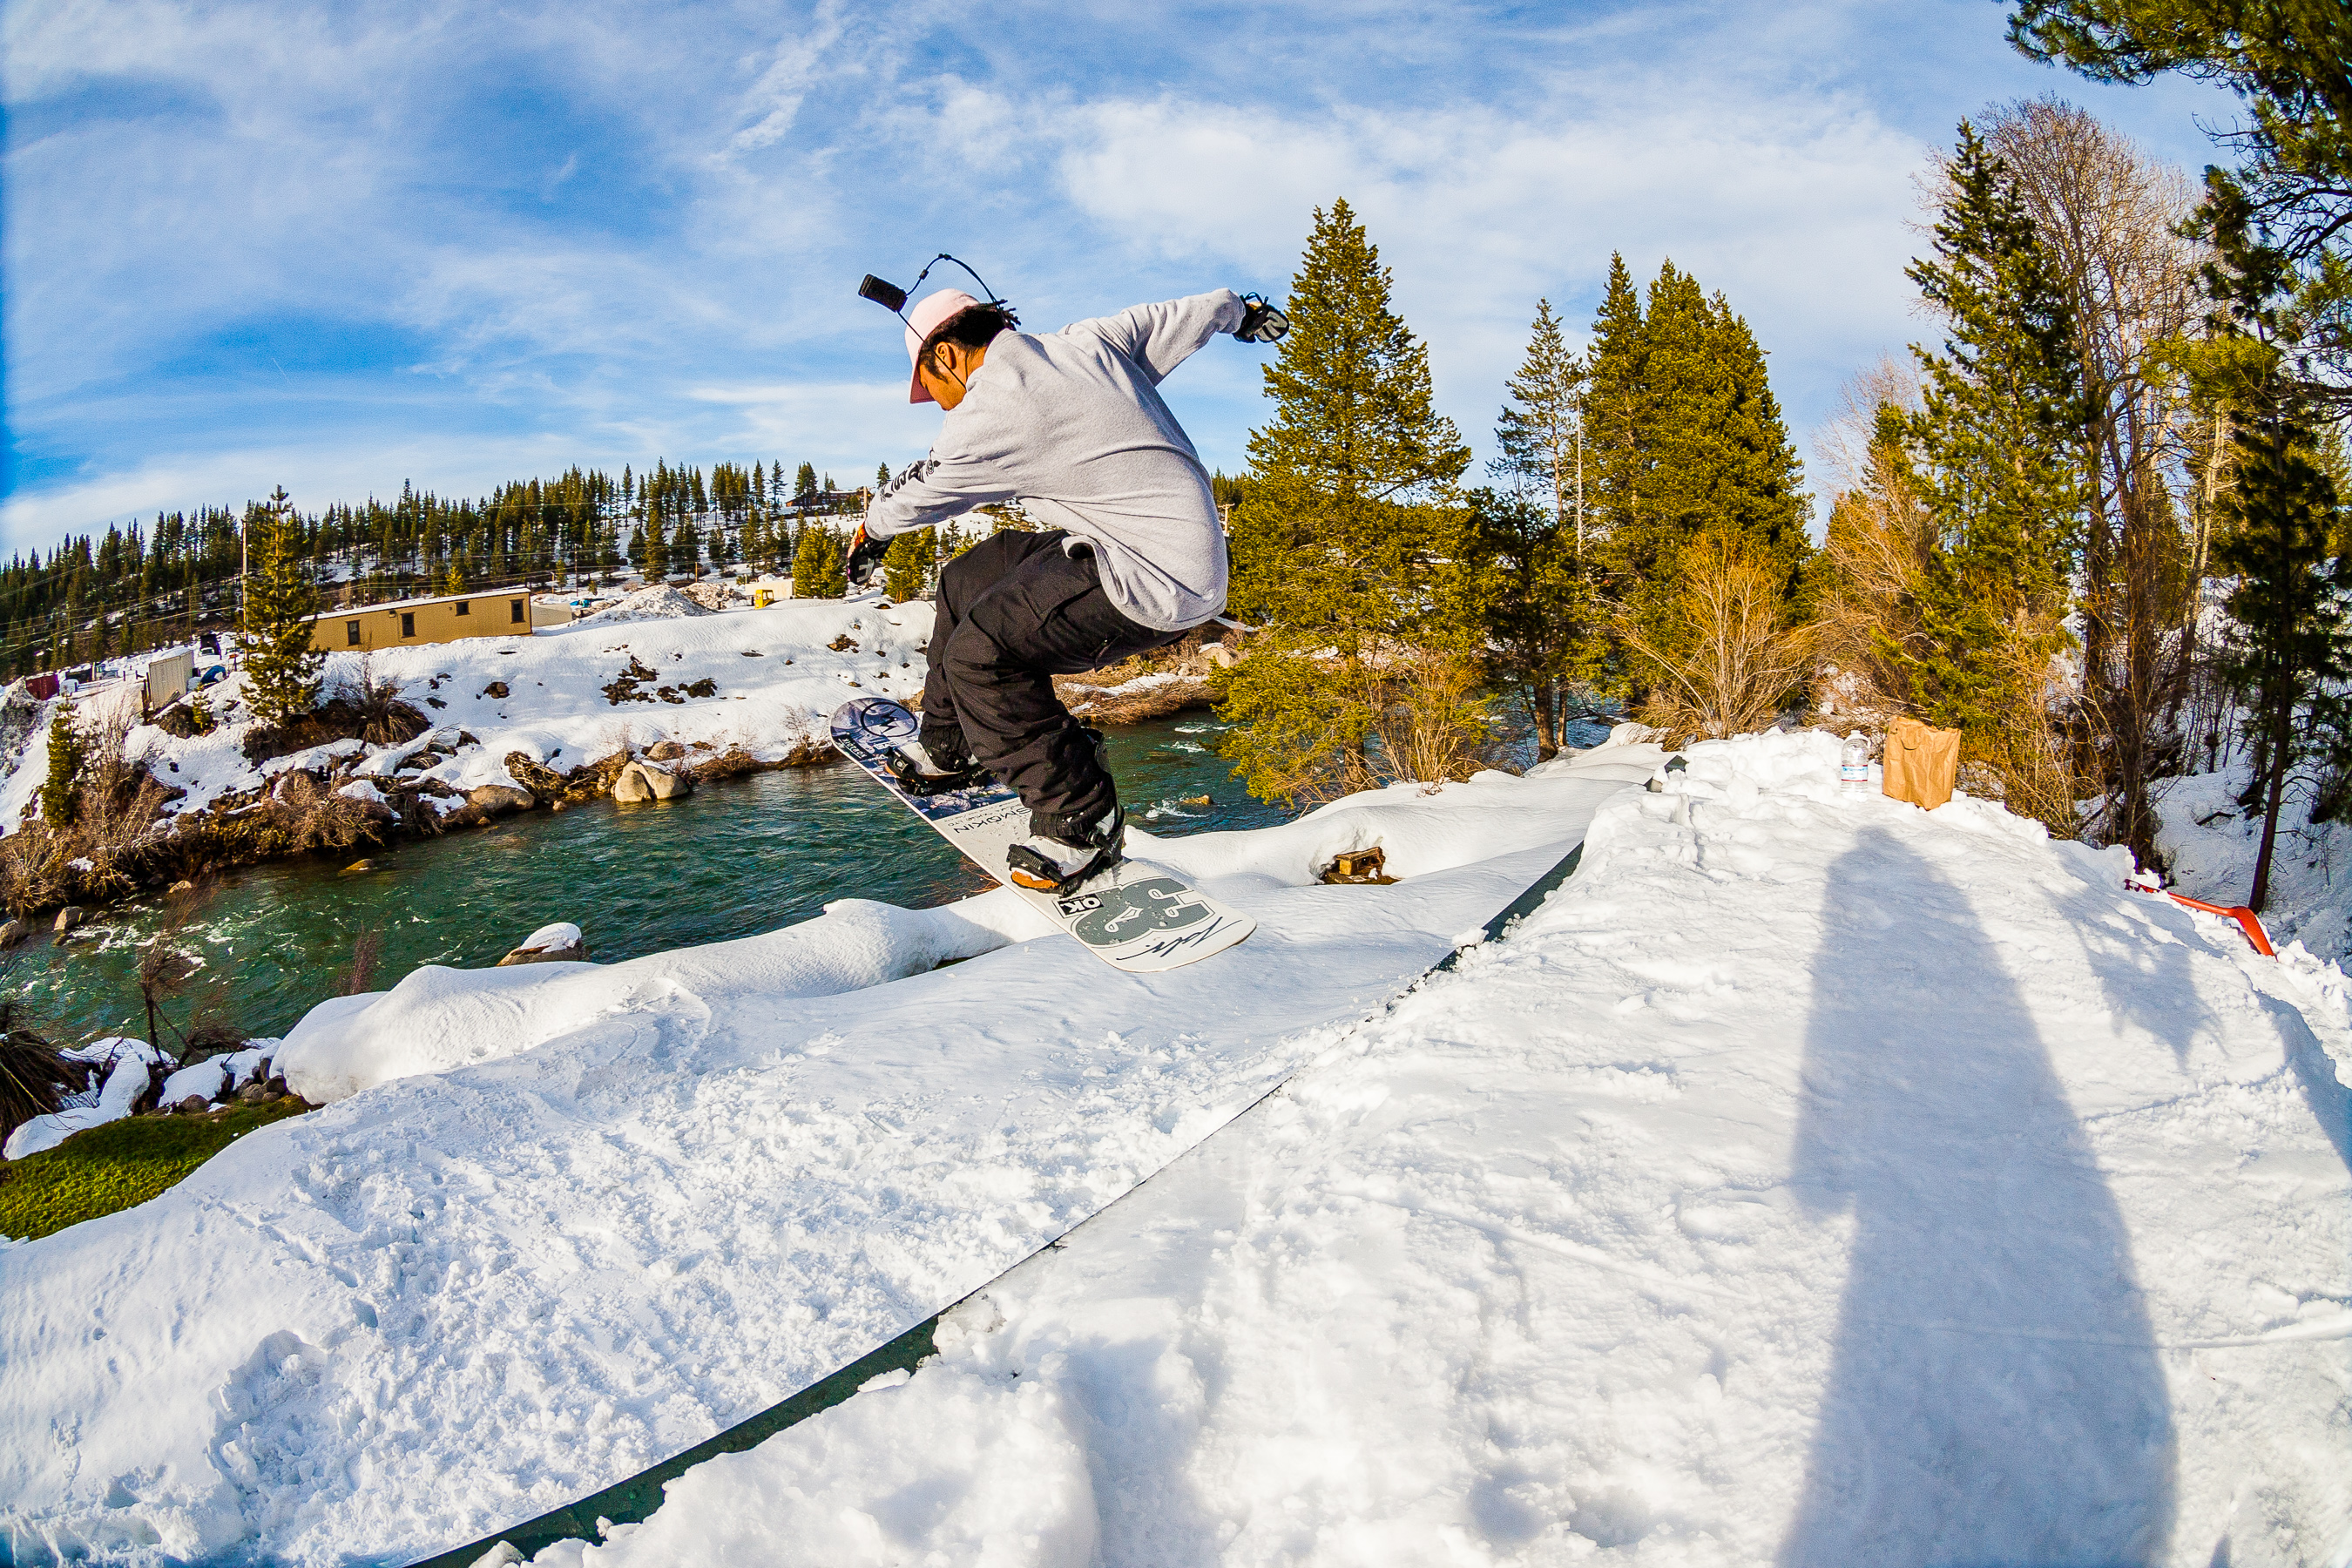 a report on snowboarding winter sports Downloads free images : snow, mountain range, vehicle, weather, snowboard, extreme sport, sports equipment, winter sport, alps, downhill, snowboarding, piste, skier, ski equipment, atmosphere of earth, geological phenomenon, freestyle skiing 3000x1897,149280.